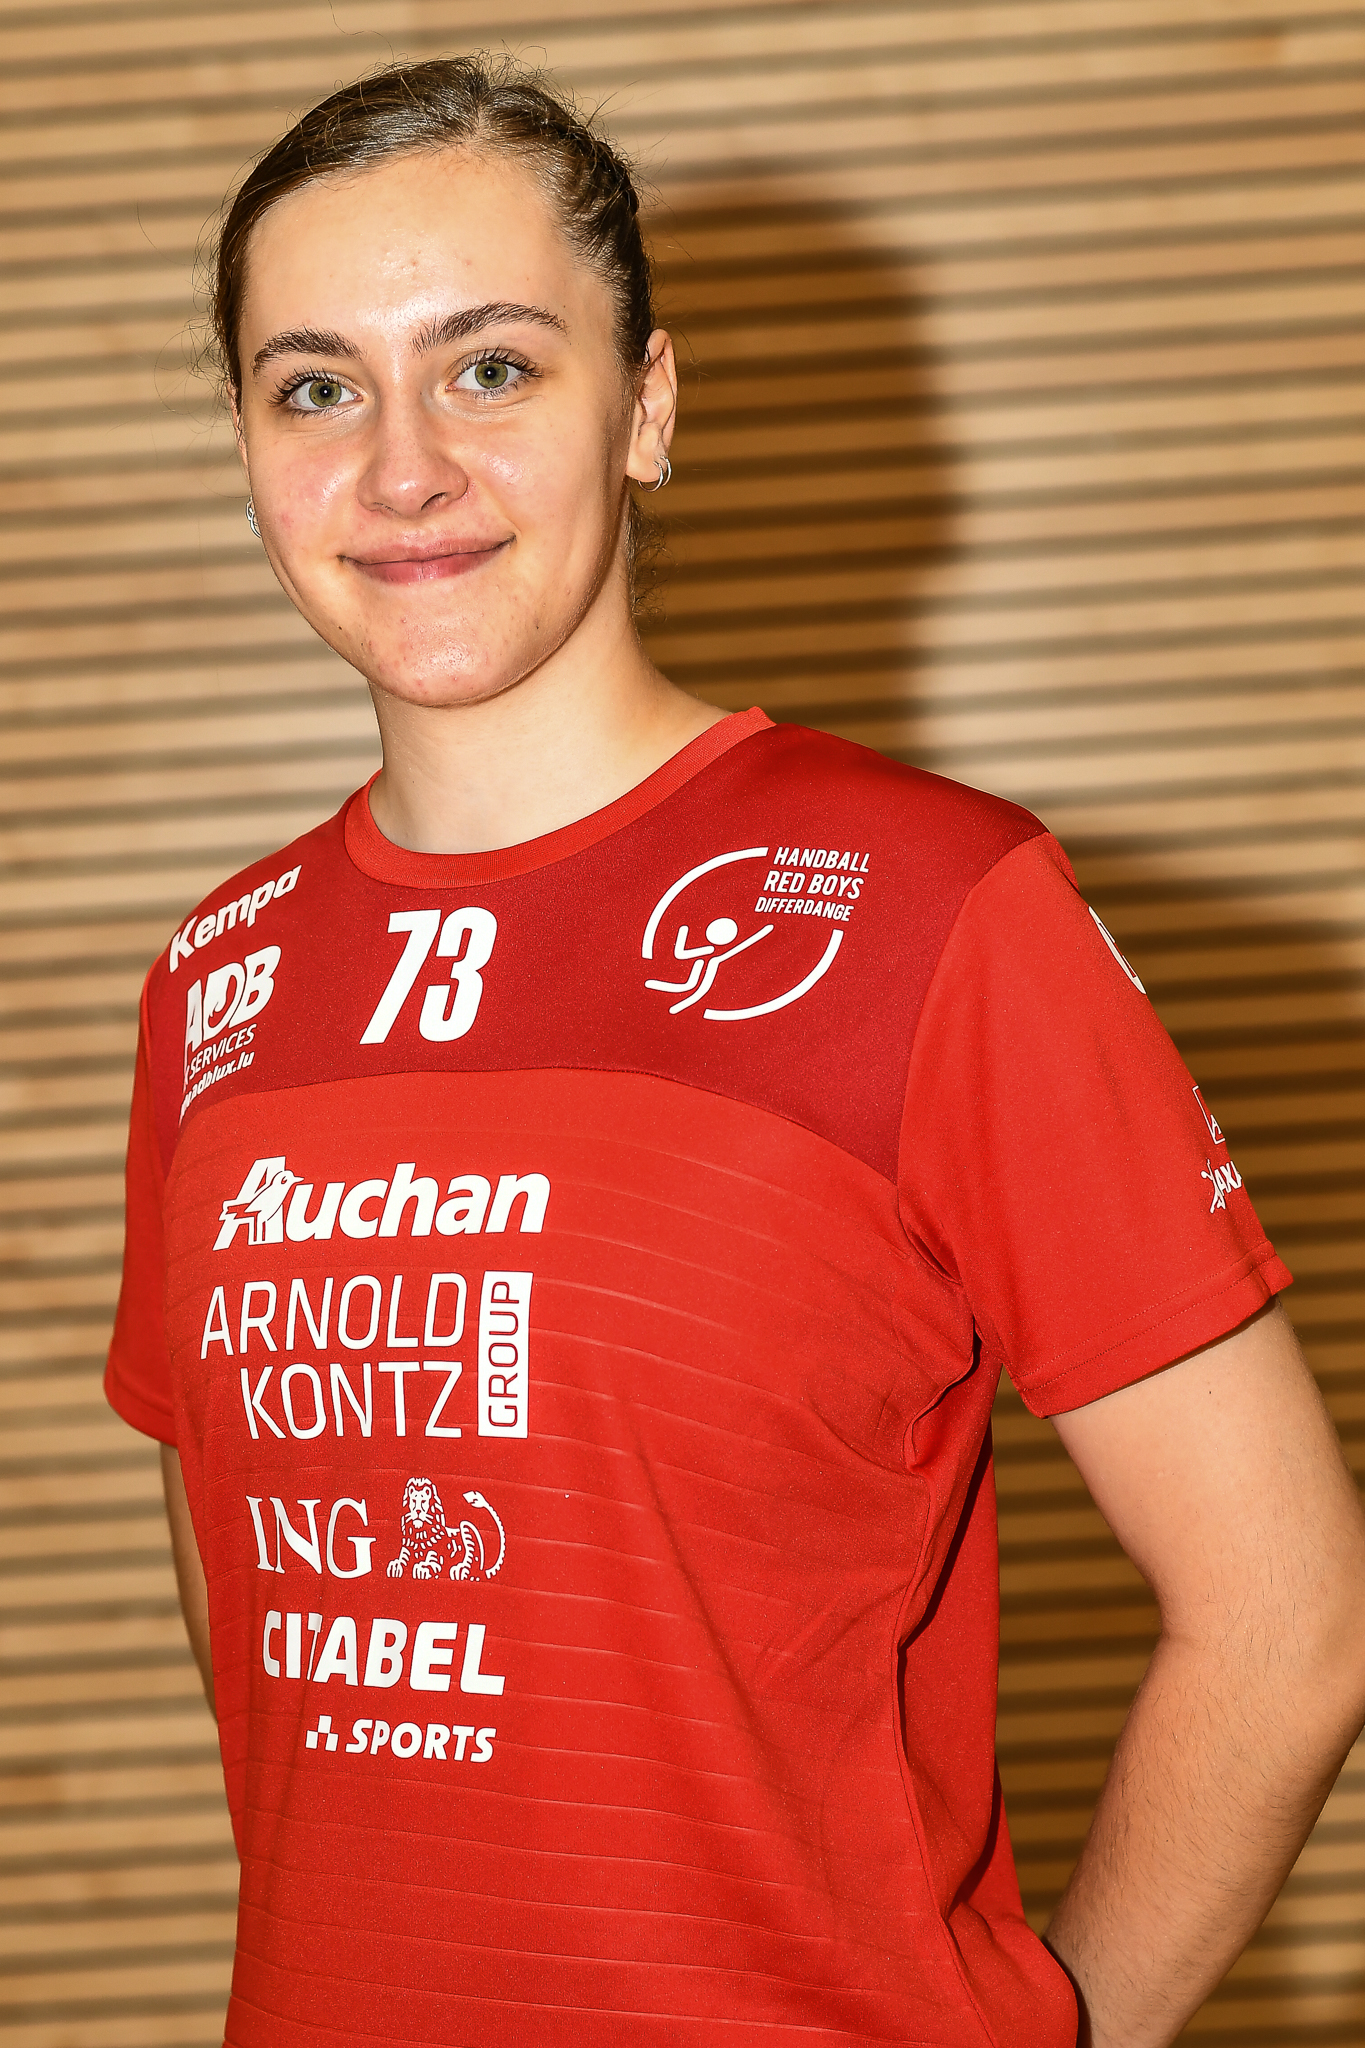 https://handball.lu/redboys/wp-content/uploads/2020/09/VAL_5898-210.jpg